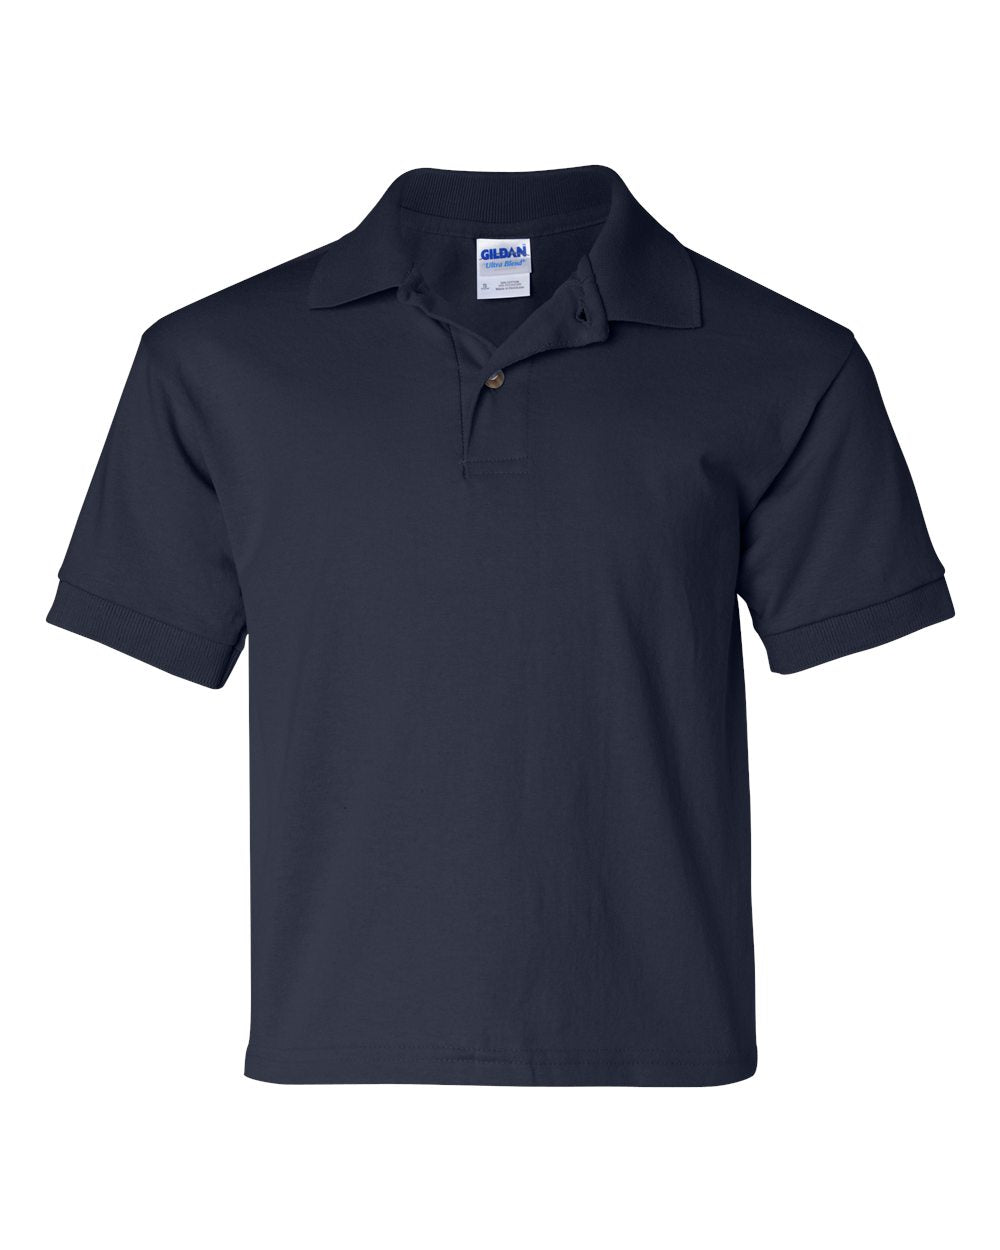 Secondary School Universal Polo, Navy